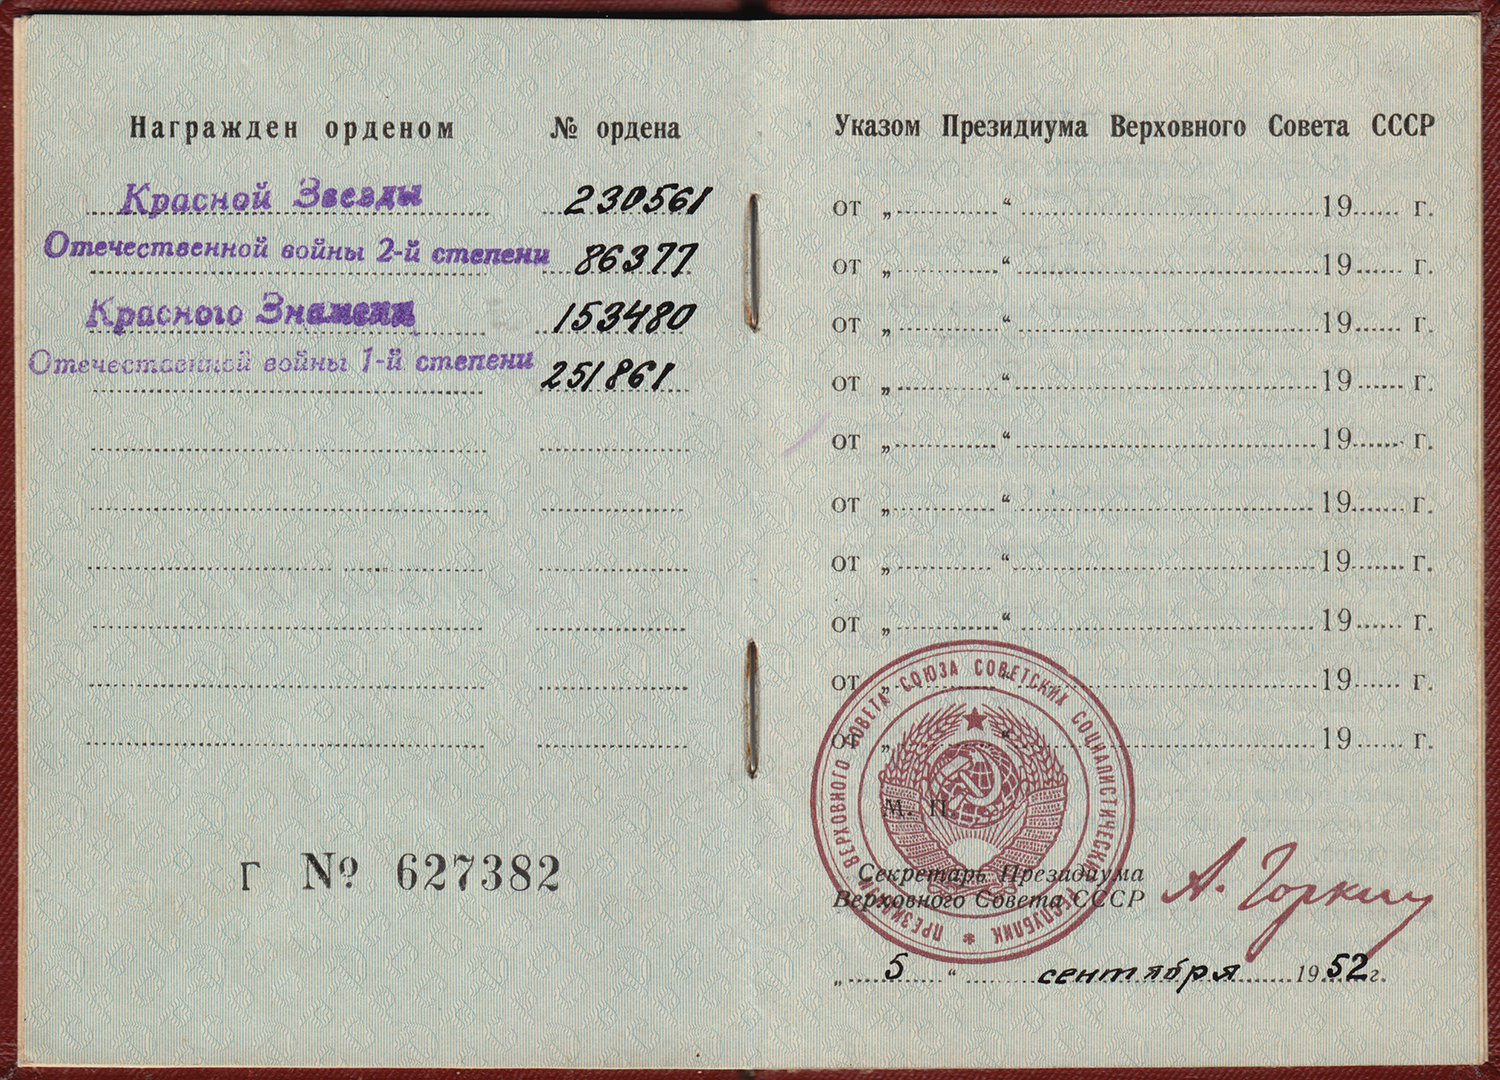 Award booklet.  Awards: Order of the Red Star (2) Order of the Red Banner Order of the Great Patriotic War, 2nd degree Order of the Great Patriotic War, 1st degree